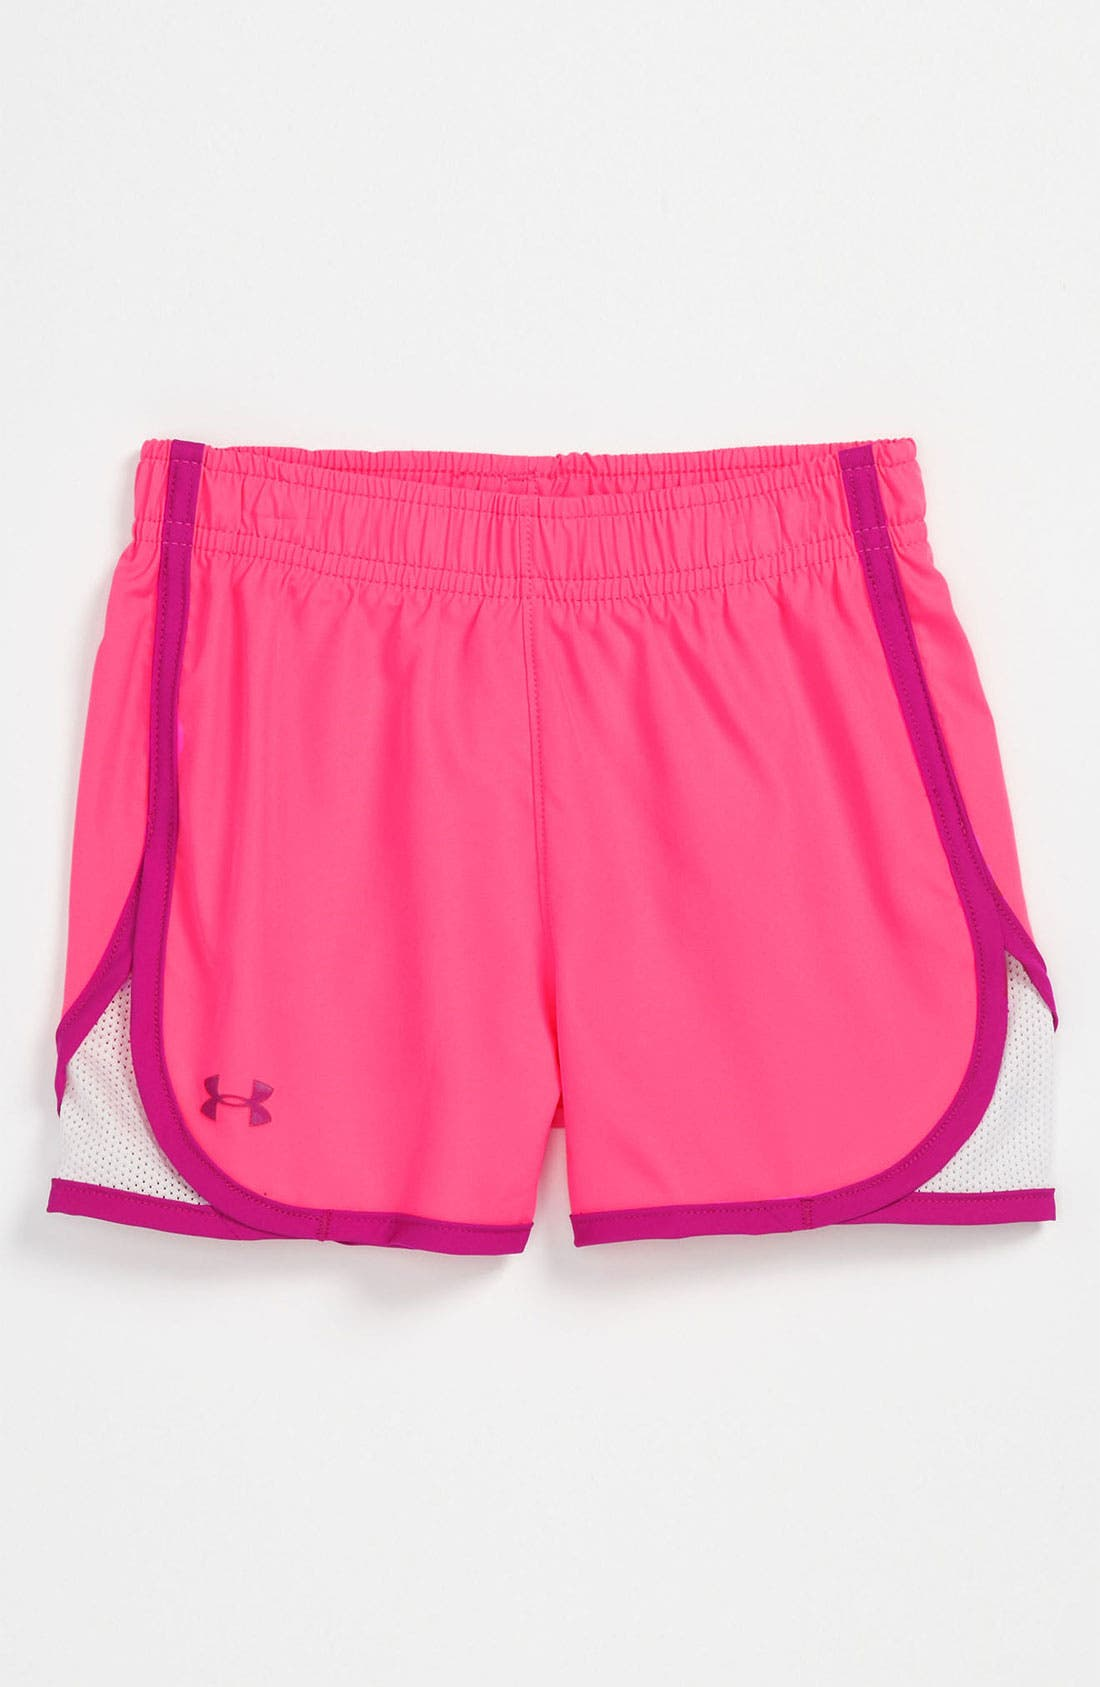 Alternate Image 1 Selected - Under Armour HeatGear® Shorts (Toddler)